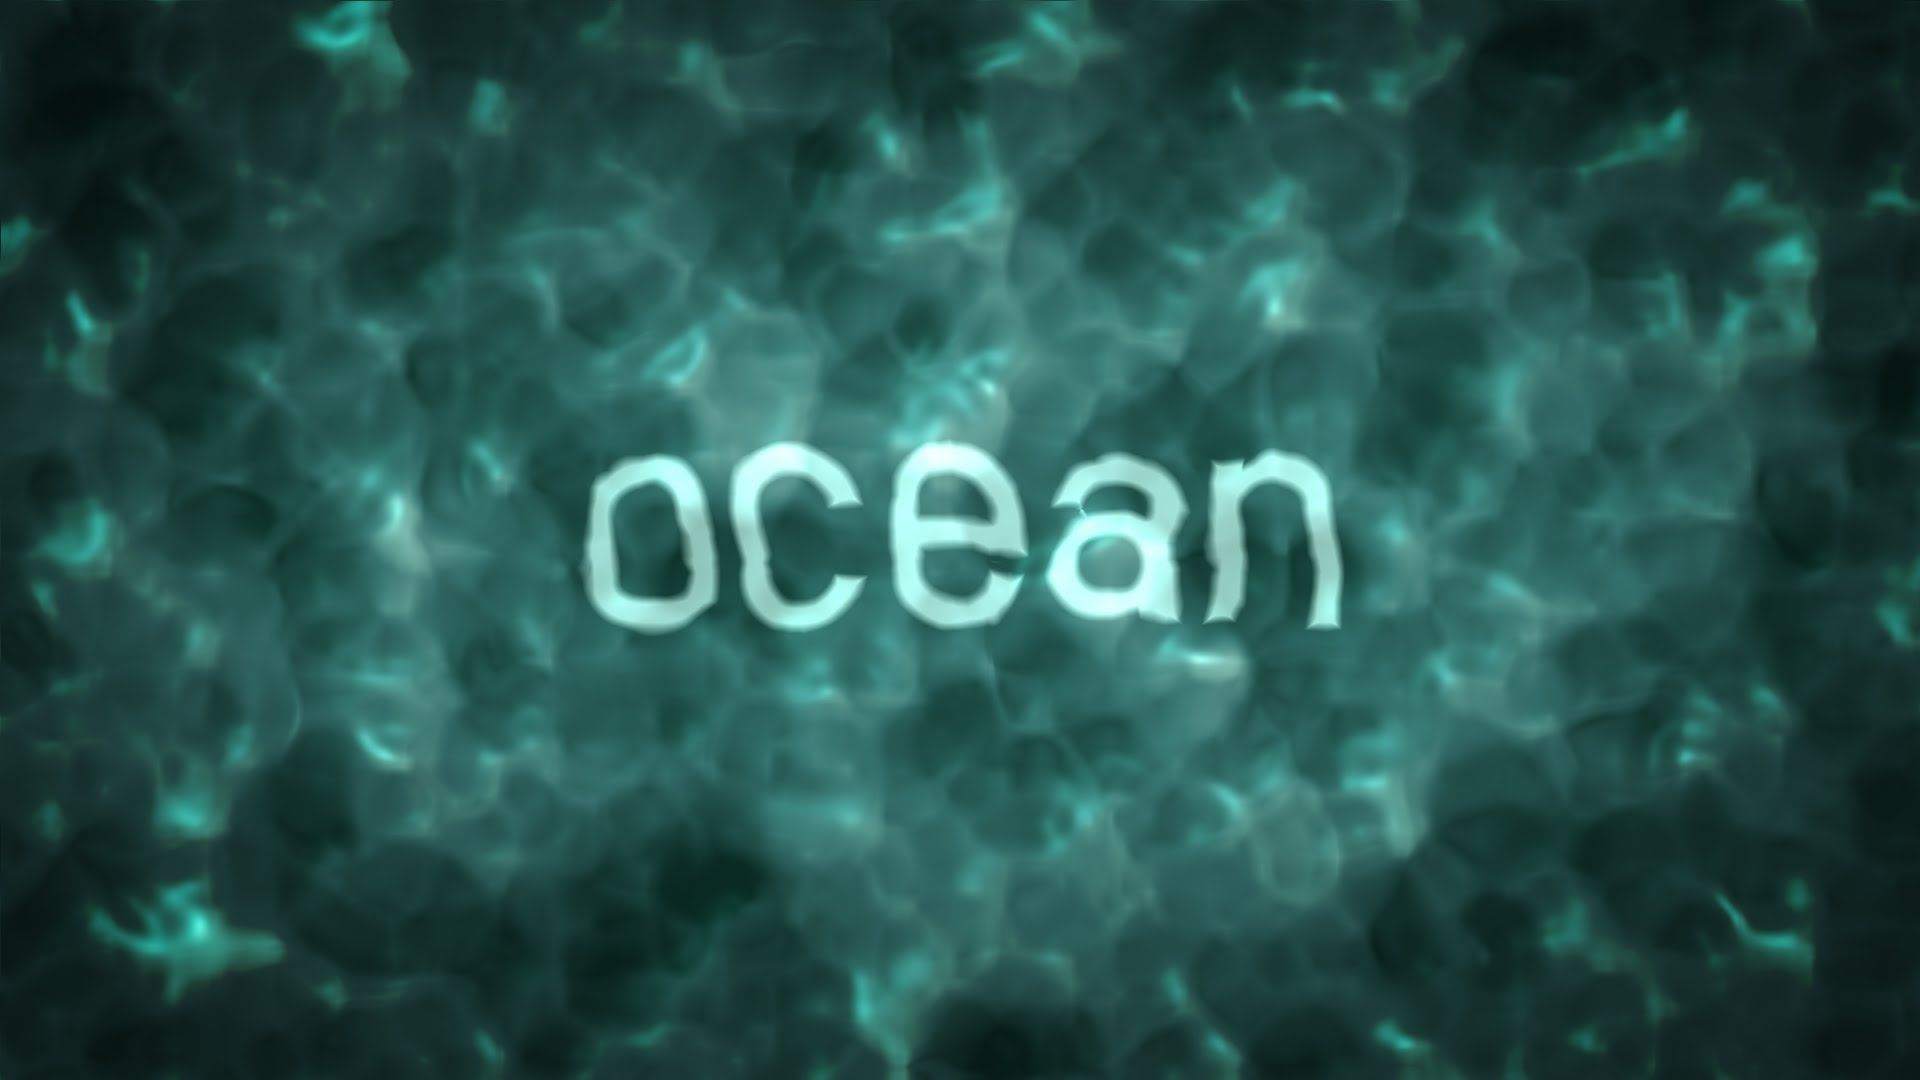 Ocean Water Ripple Effect - After Effects tutorial | Post ...